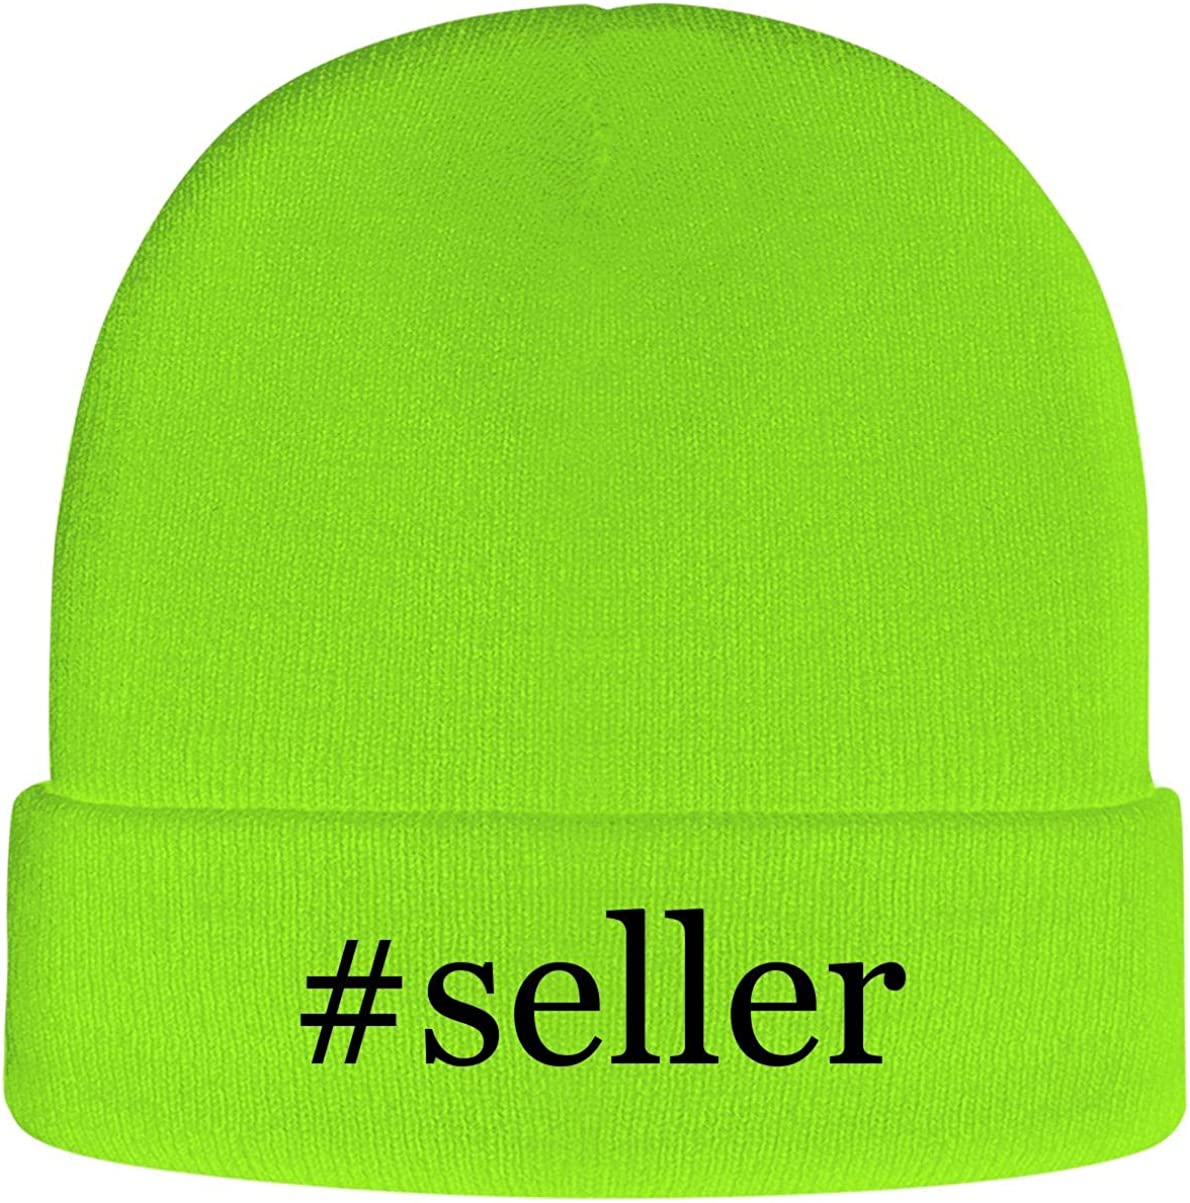 One Legging it Around #Seller - Soft Hashtag Adult Beanie Cap